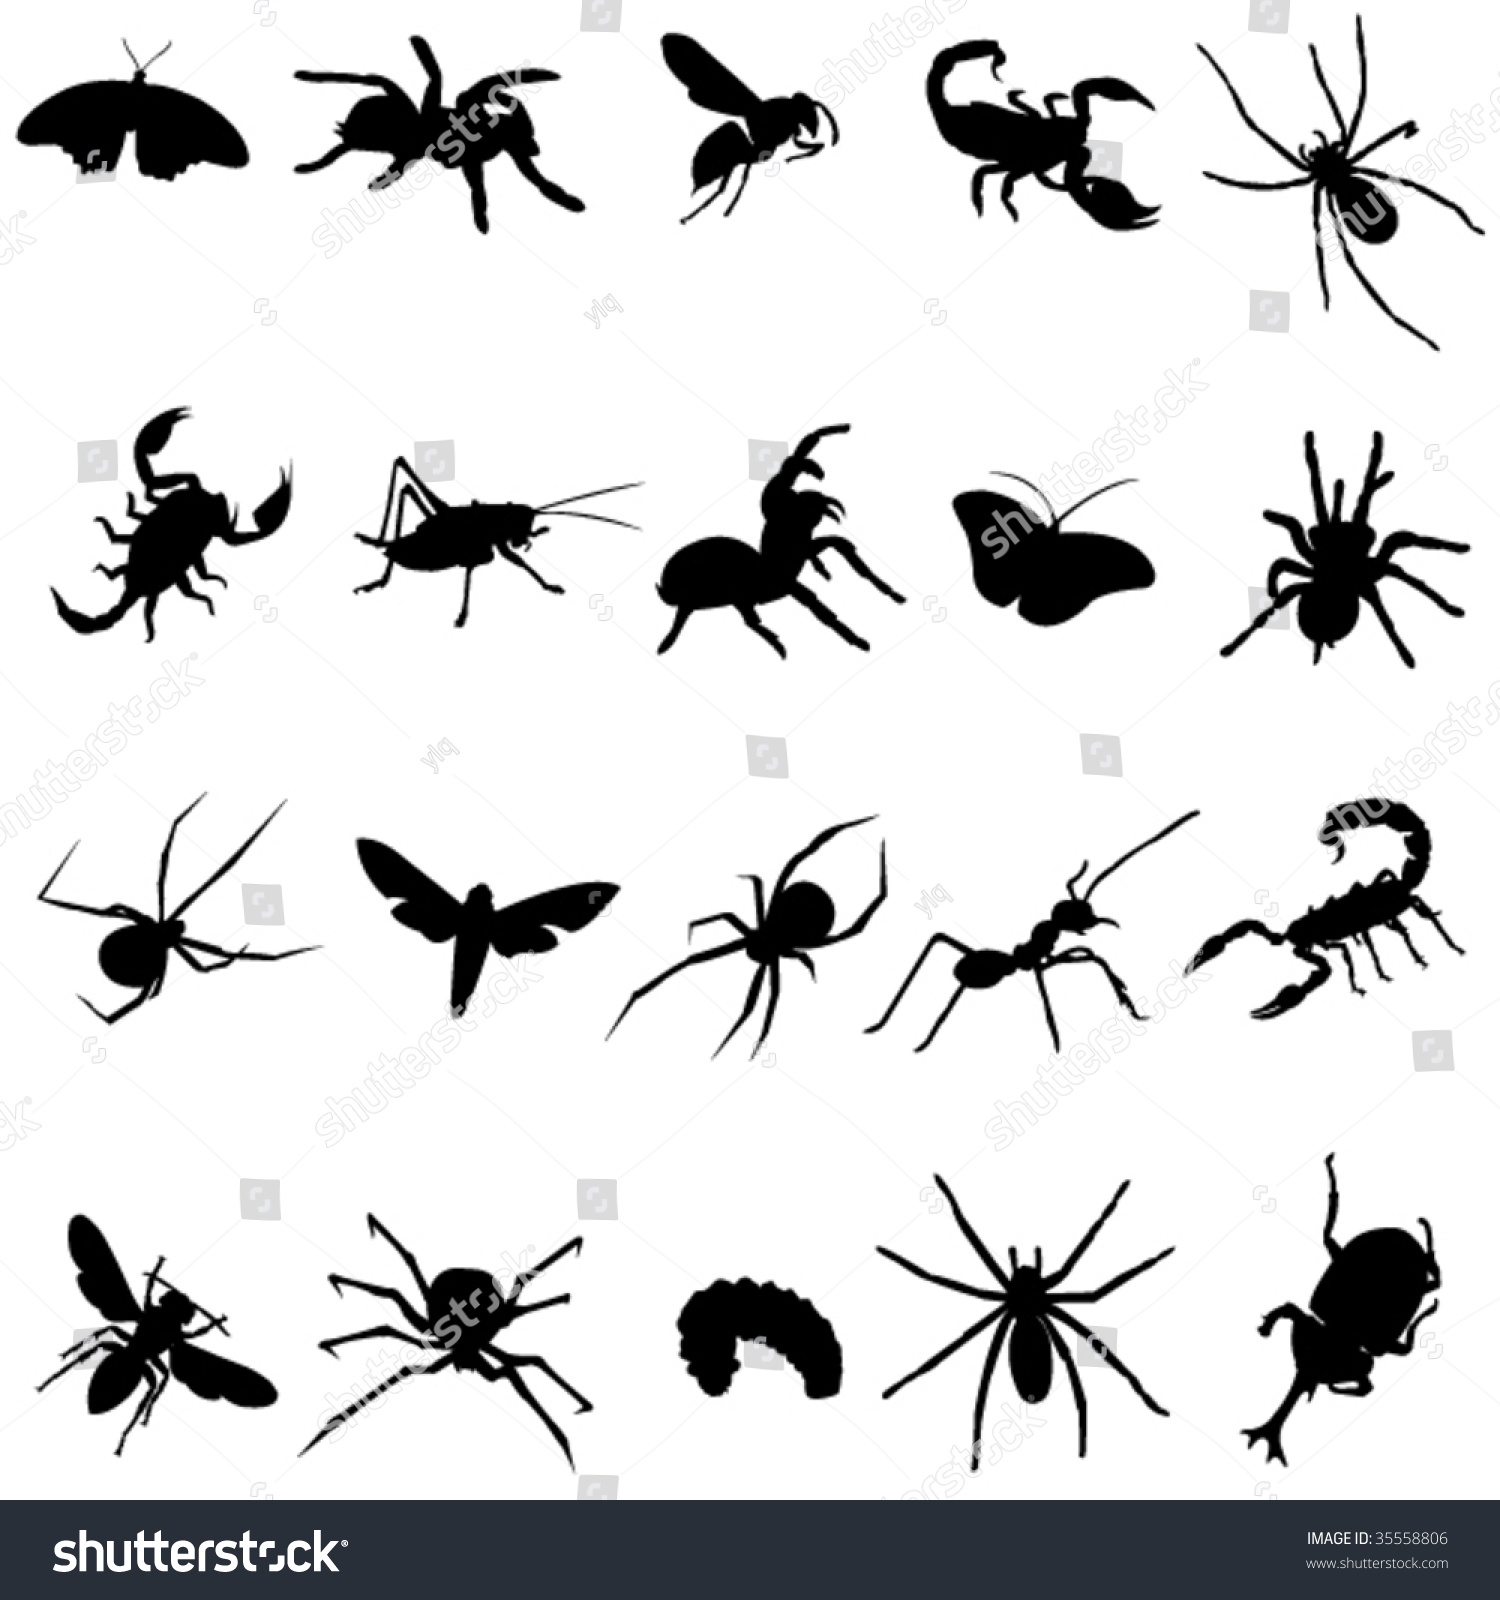 Around World All Types Insects Stock Vector 35558806 - Shutterstock